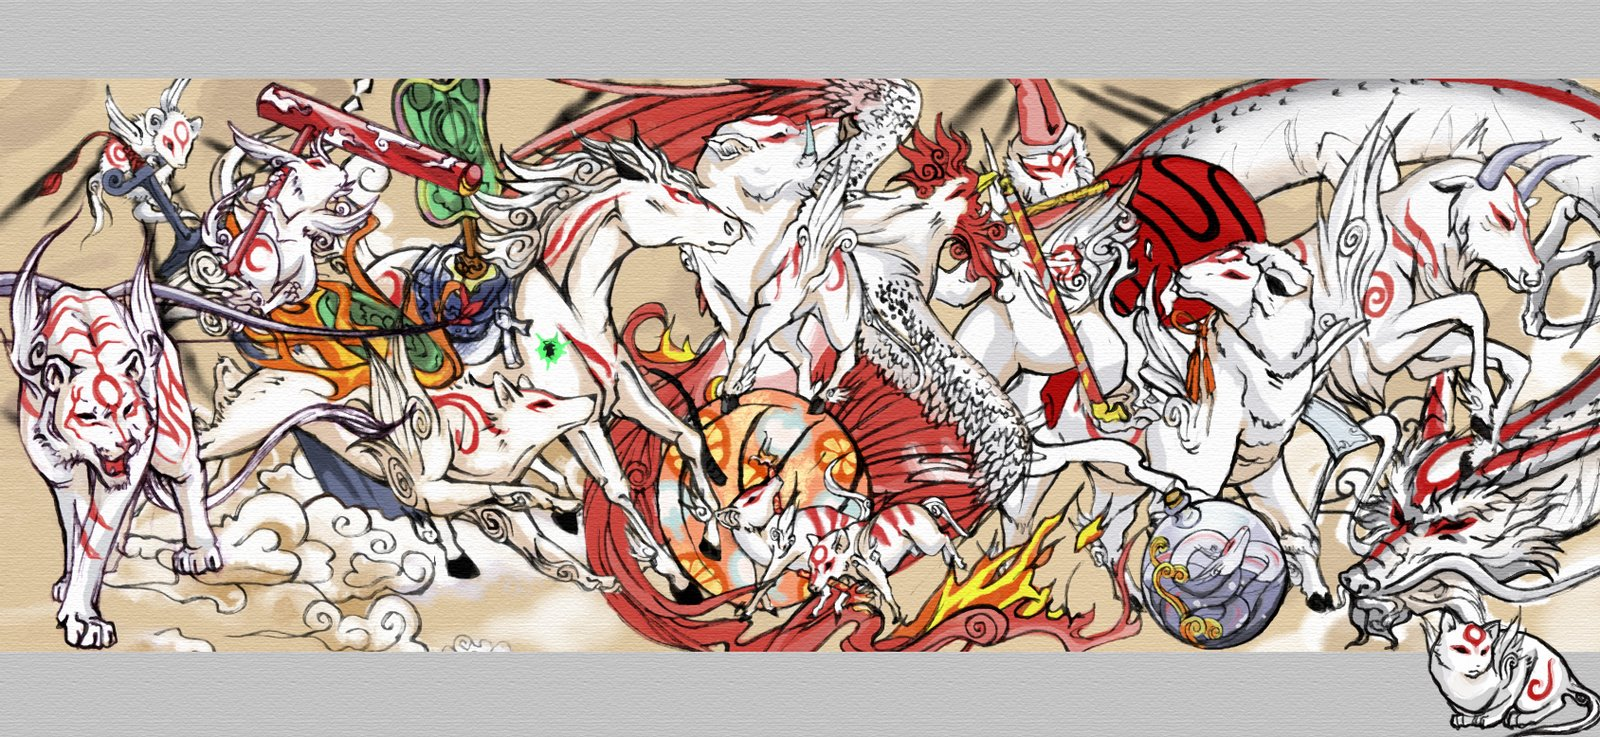 How Okami Transformed The Meaning Of Characters Like Amaterasu